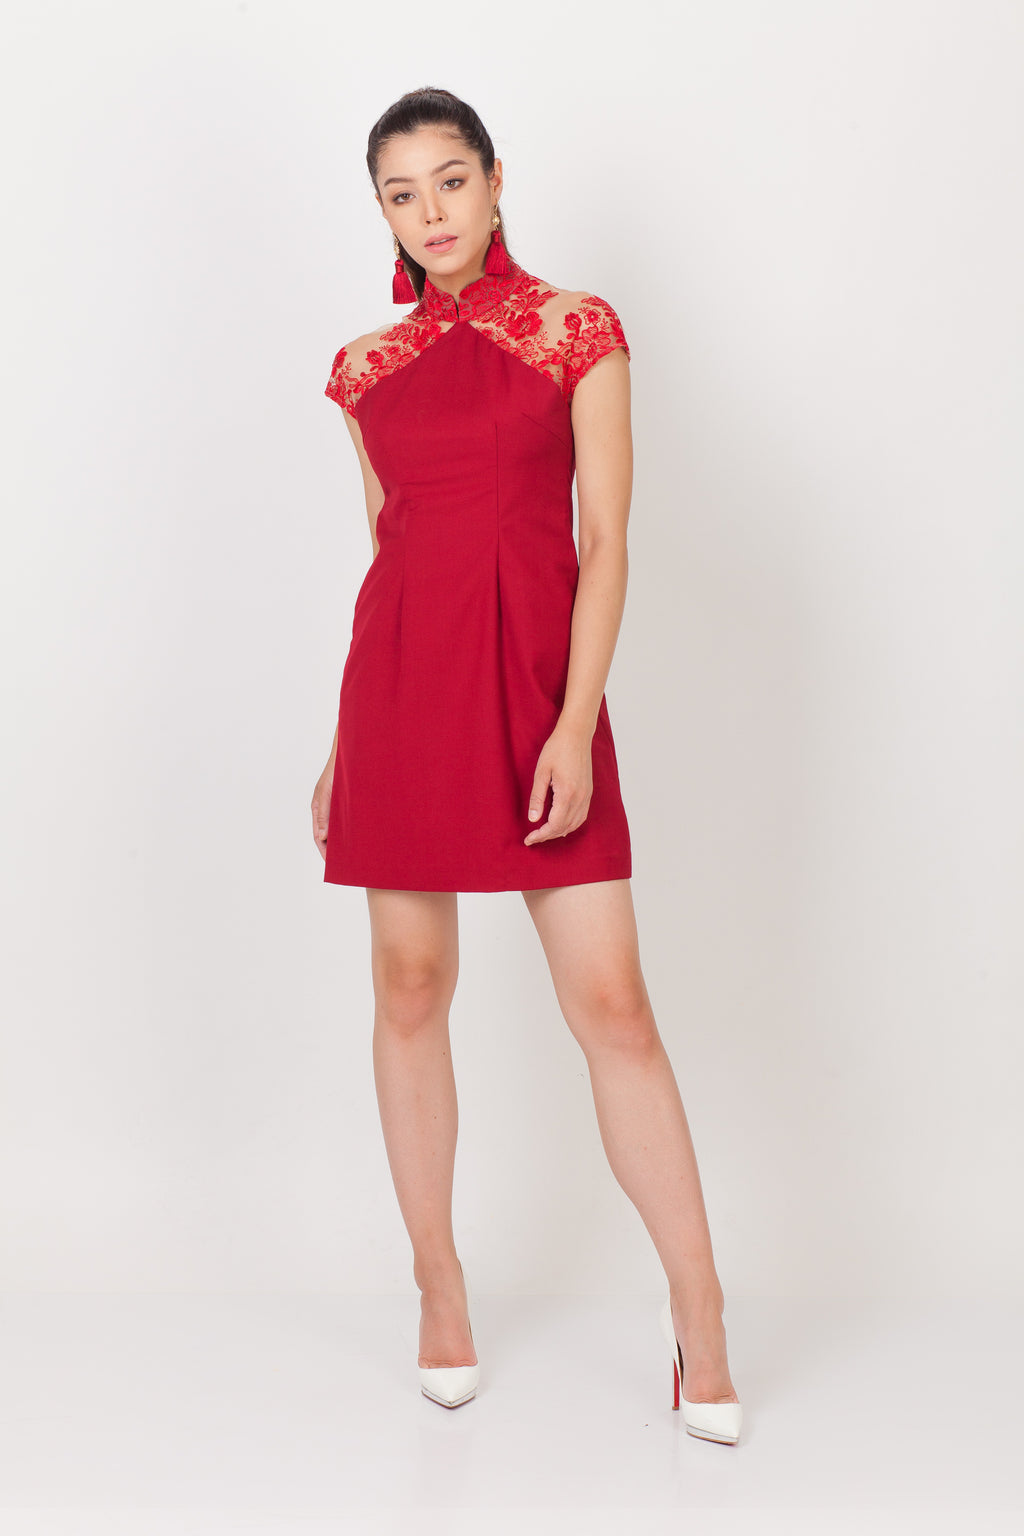 Qipology Lace Mini Qipao